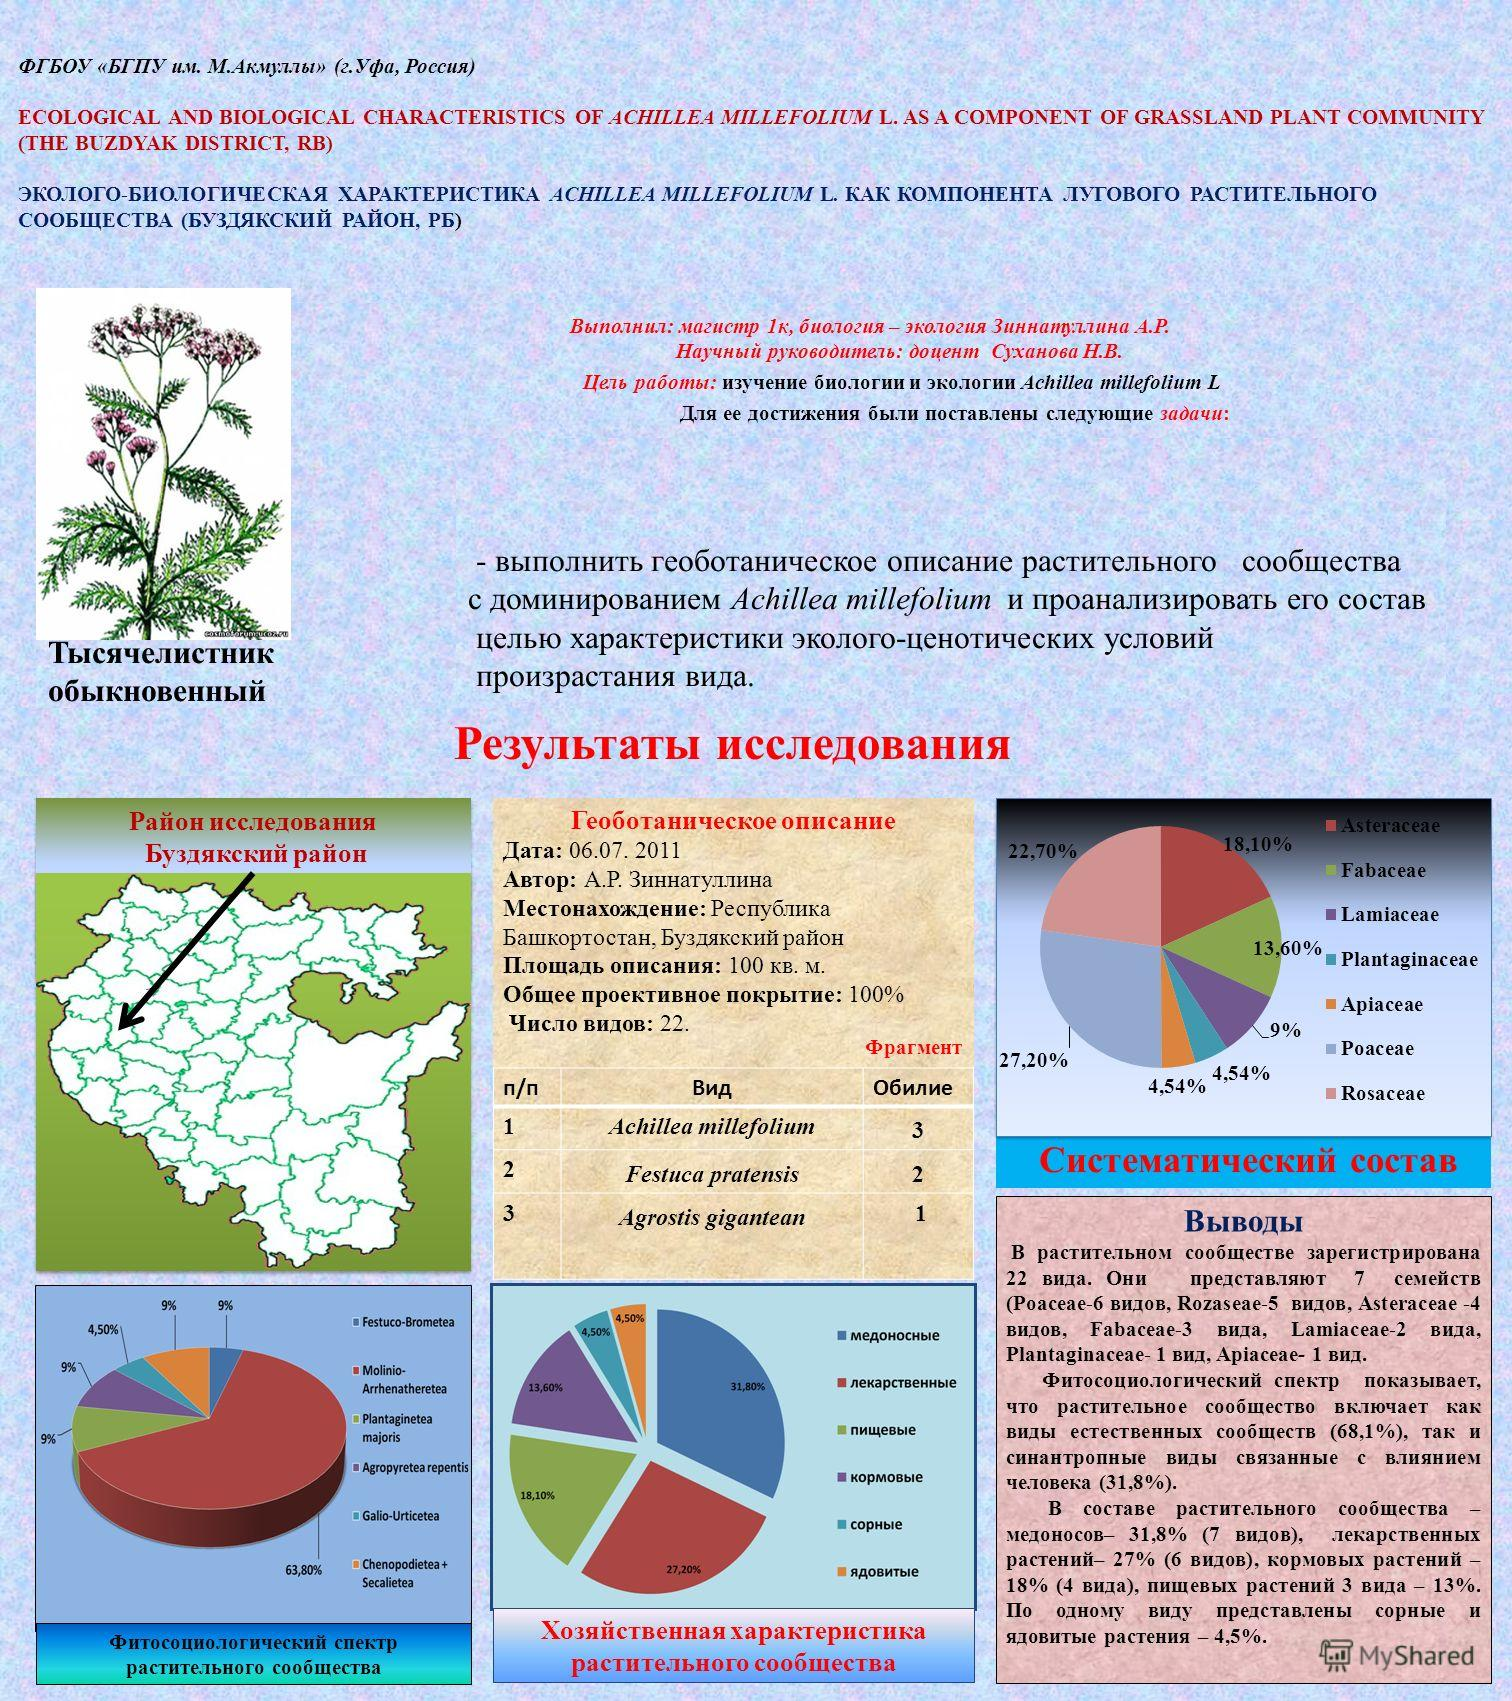 ФГБОУ «БГПУ им. М.Акмуллы» (г.Уфа, Россия) ECOLOGICAL AND BIOLOGICAL CHARACTERISTICS OF ACHILLEA MILLEFOLIUM L. AS A COMPONENT OF GRASSLAND PLANT COMMUNITY (THE BUZDYAK DISTRICT, RB) ЭКОЛОГО-БИОЛОГИЧЕСКАЯ ХАРАКТЕРИСТИКА ACHILLEA MILLEFOLIUM L. КАК КО